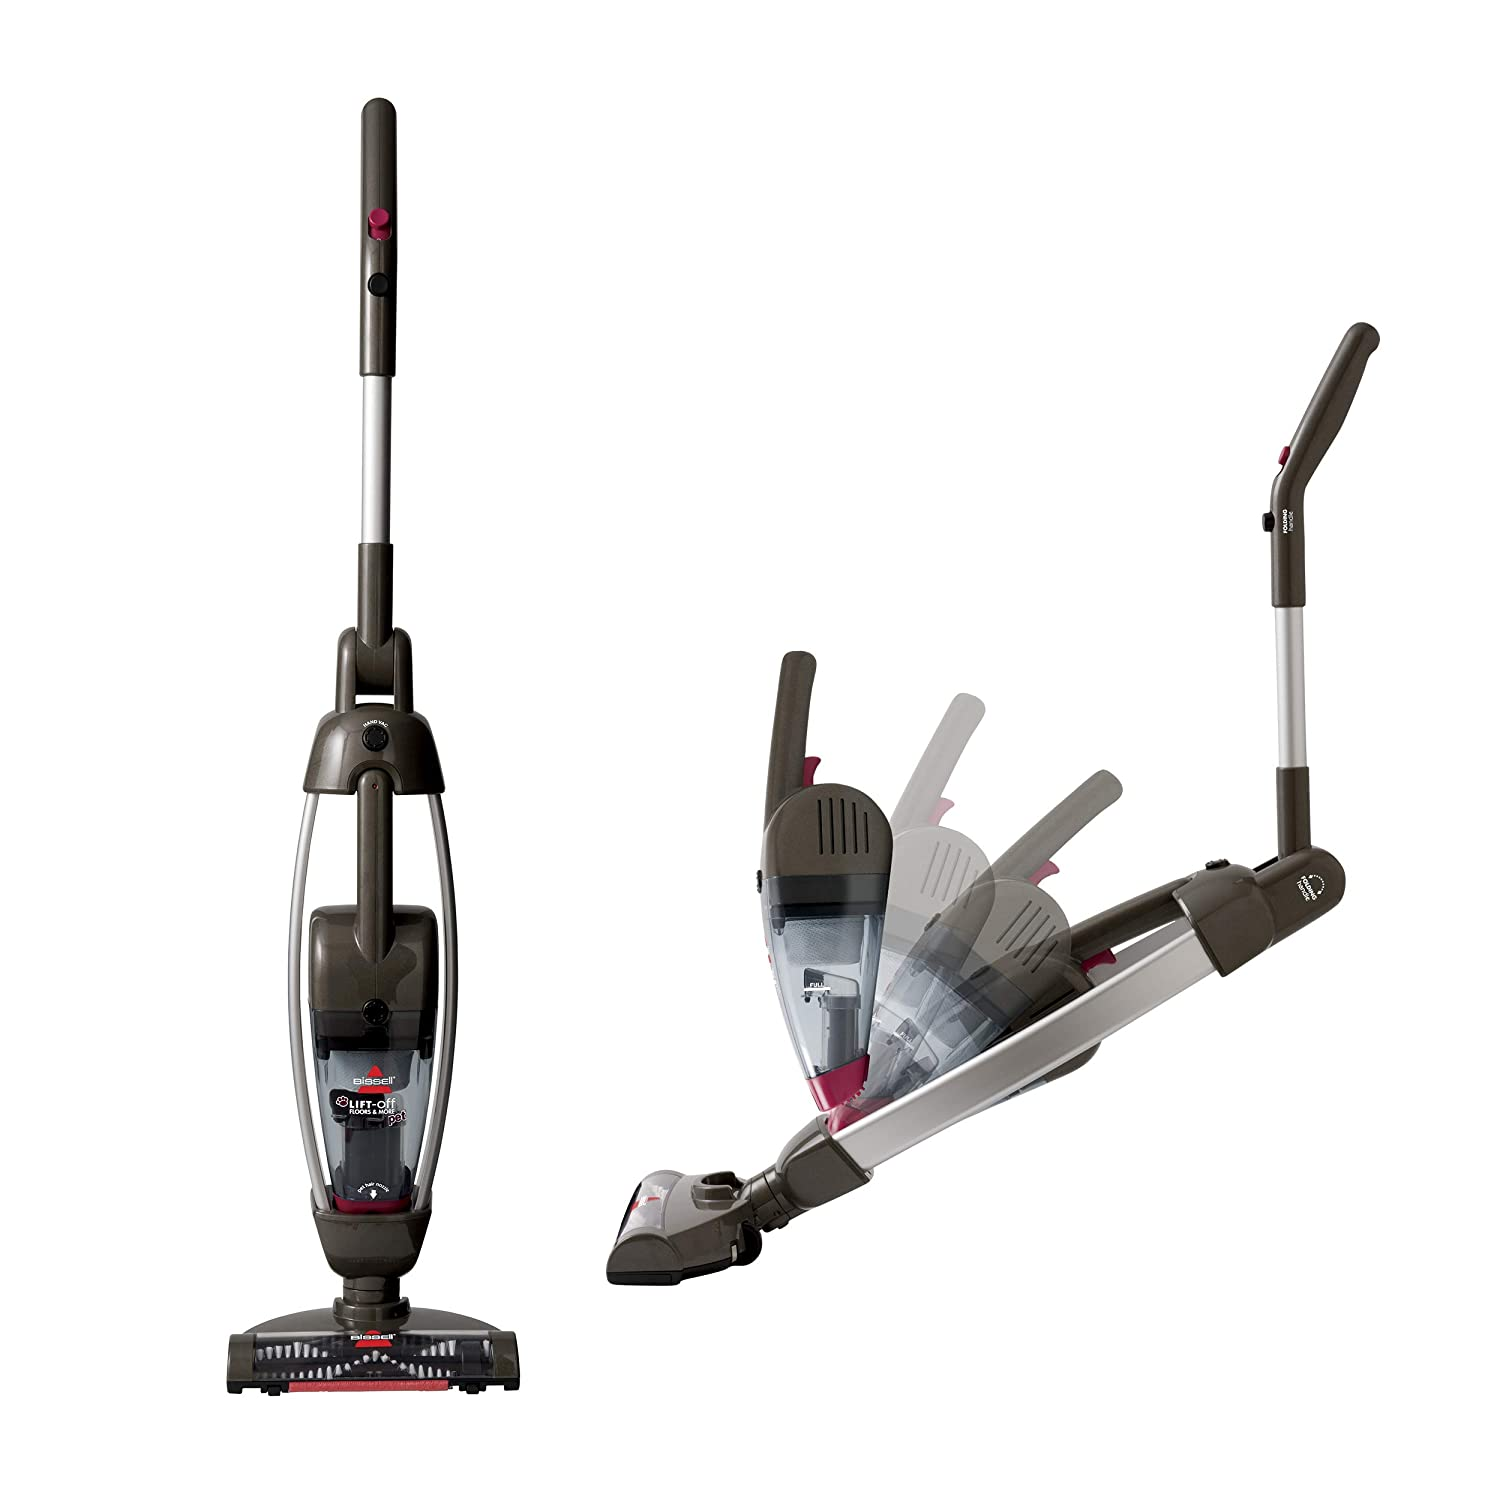 Amazon.com - BISSELL Lift-Off Floors & More Pet - Cordless - Stick Vacuums